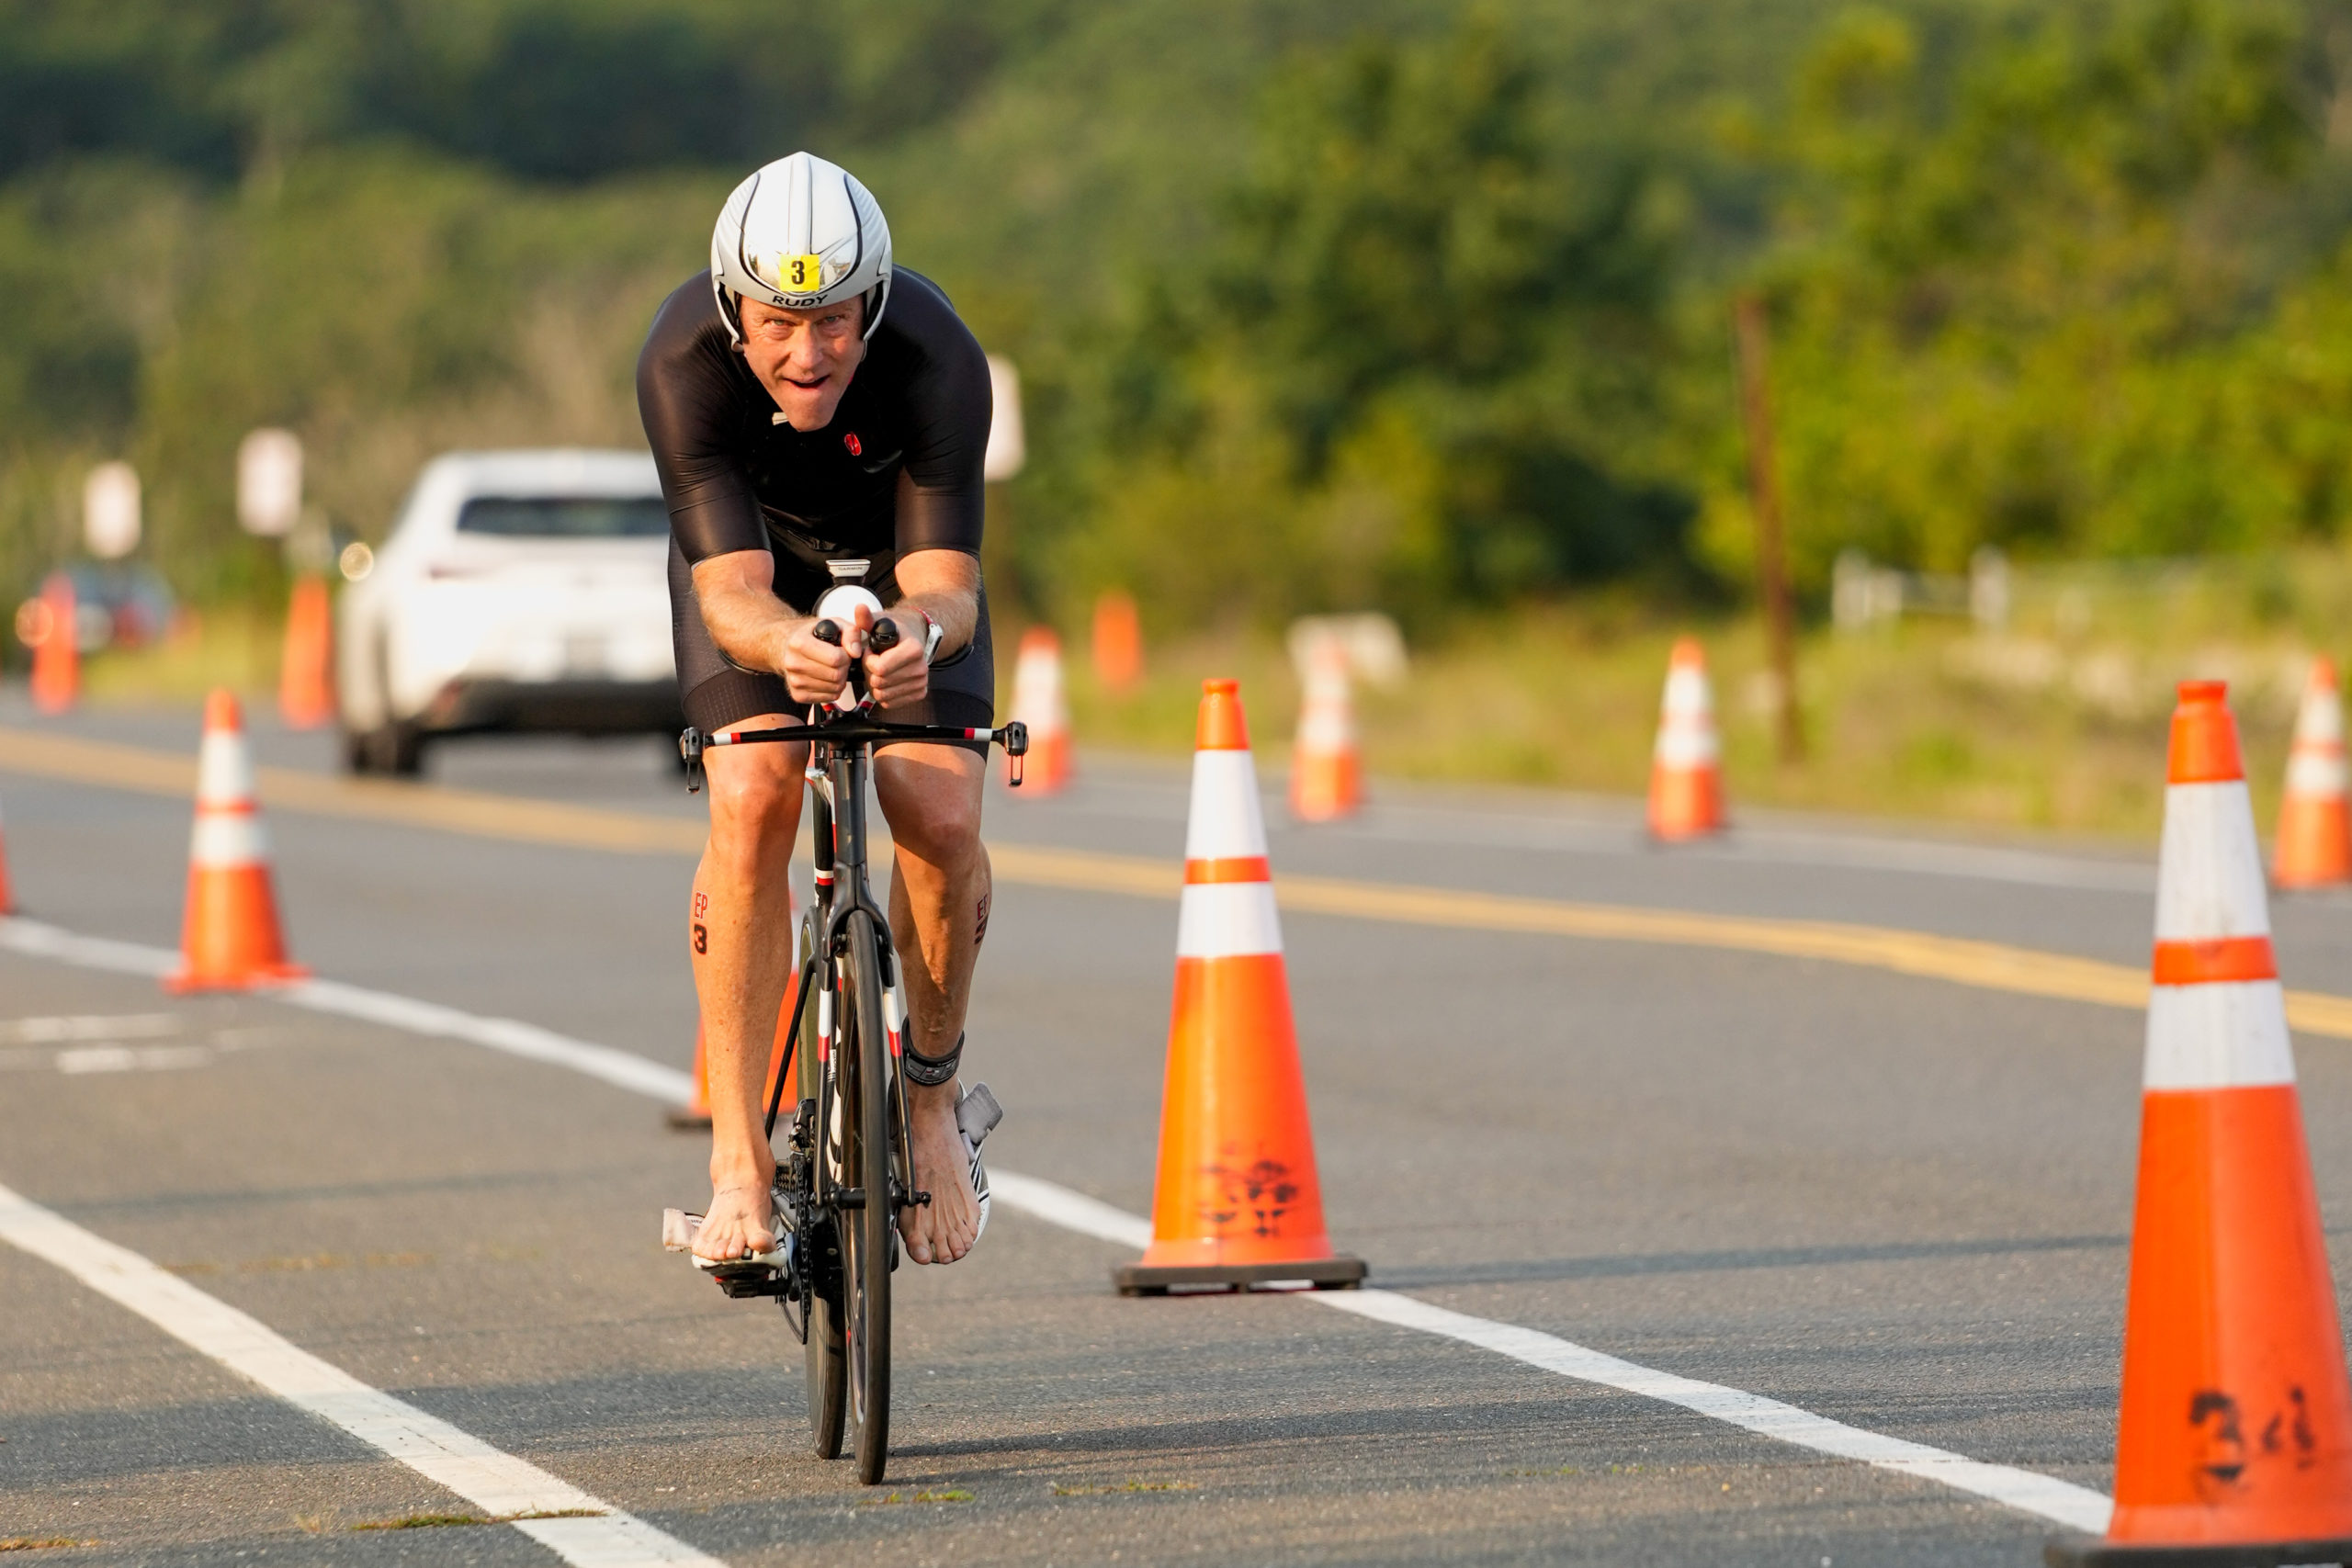 Sam Martini in the bike portion of the race.